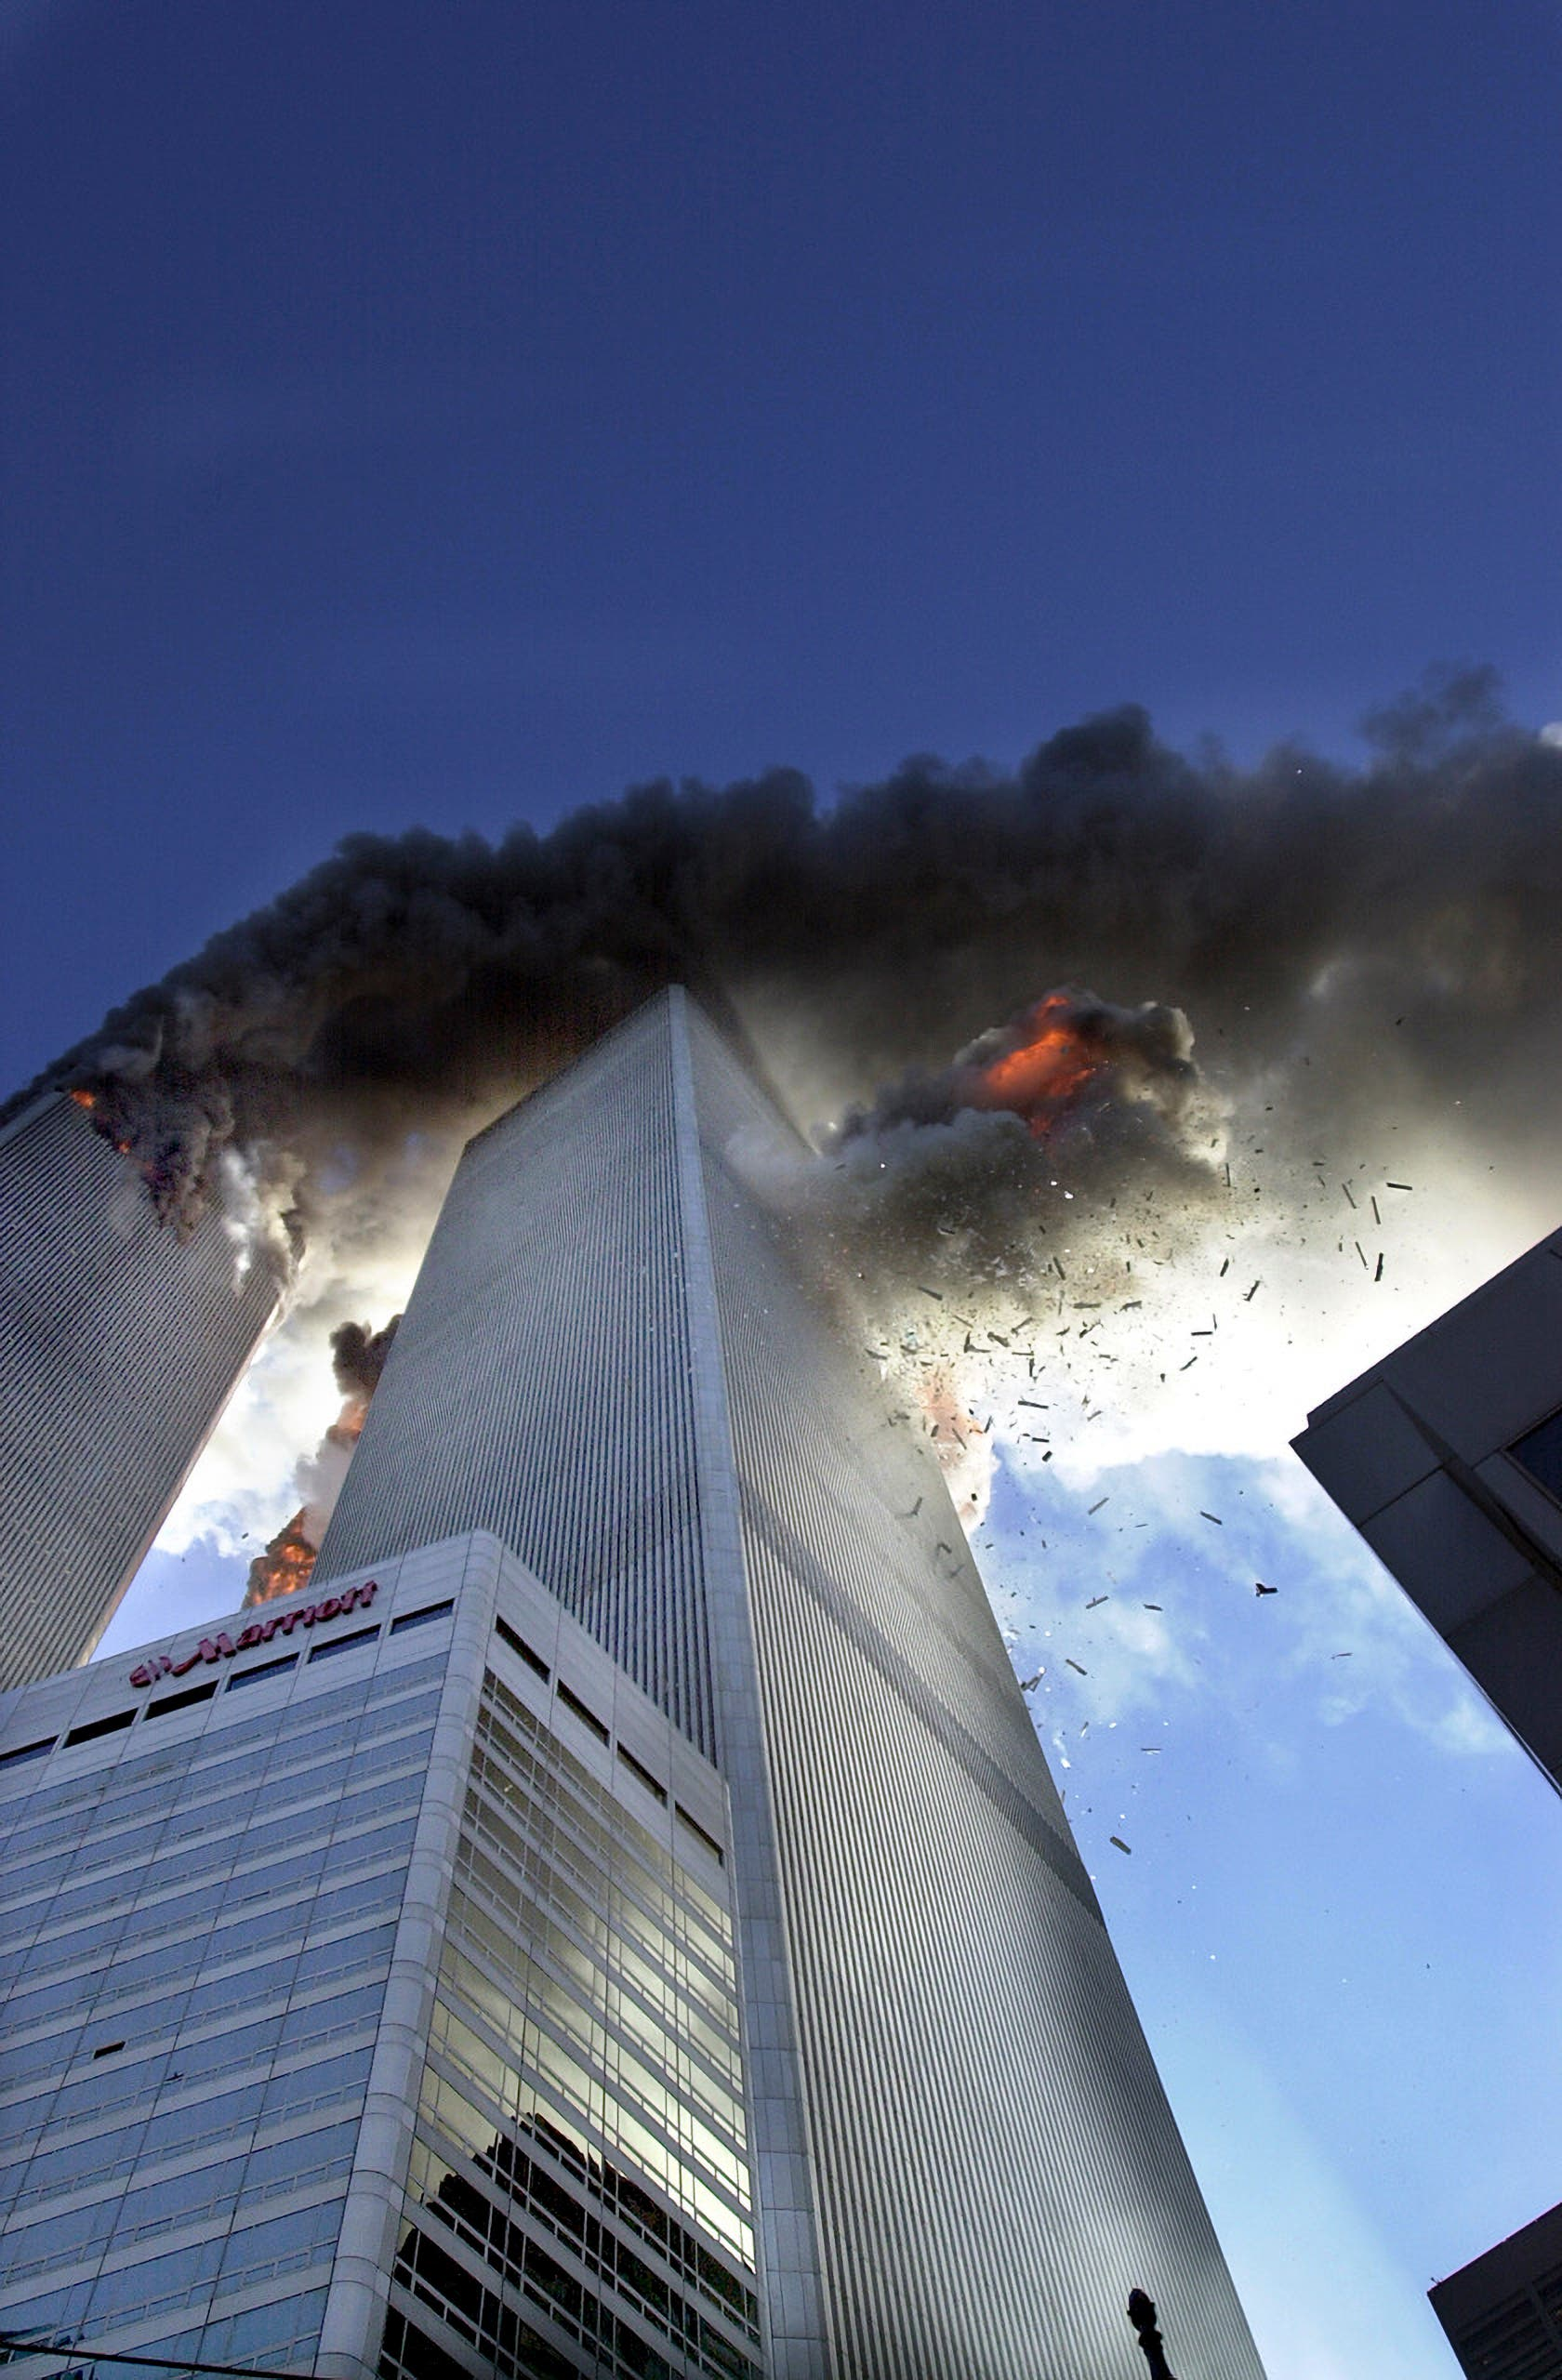 David Handschuh Shot One of the Most Iconic Photos of 9/11